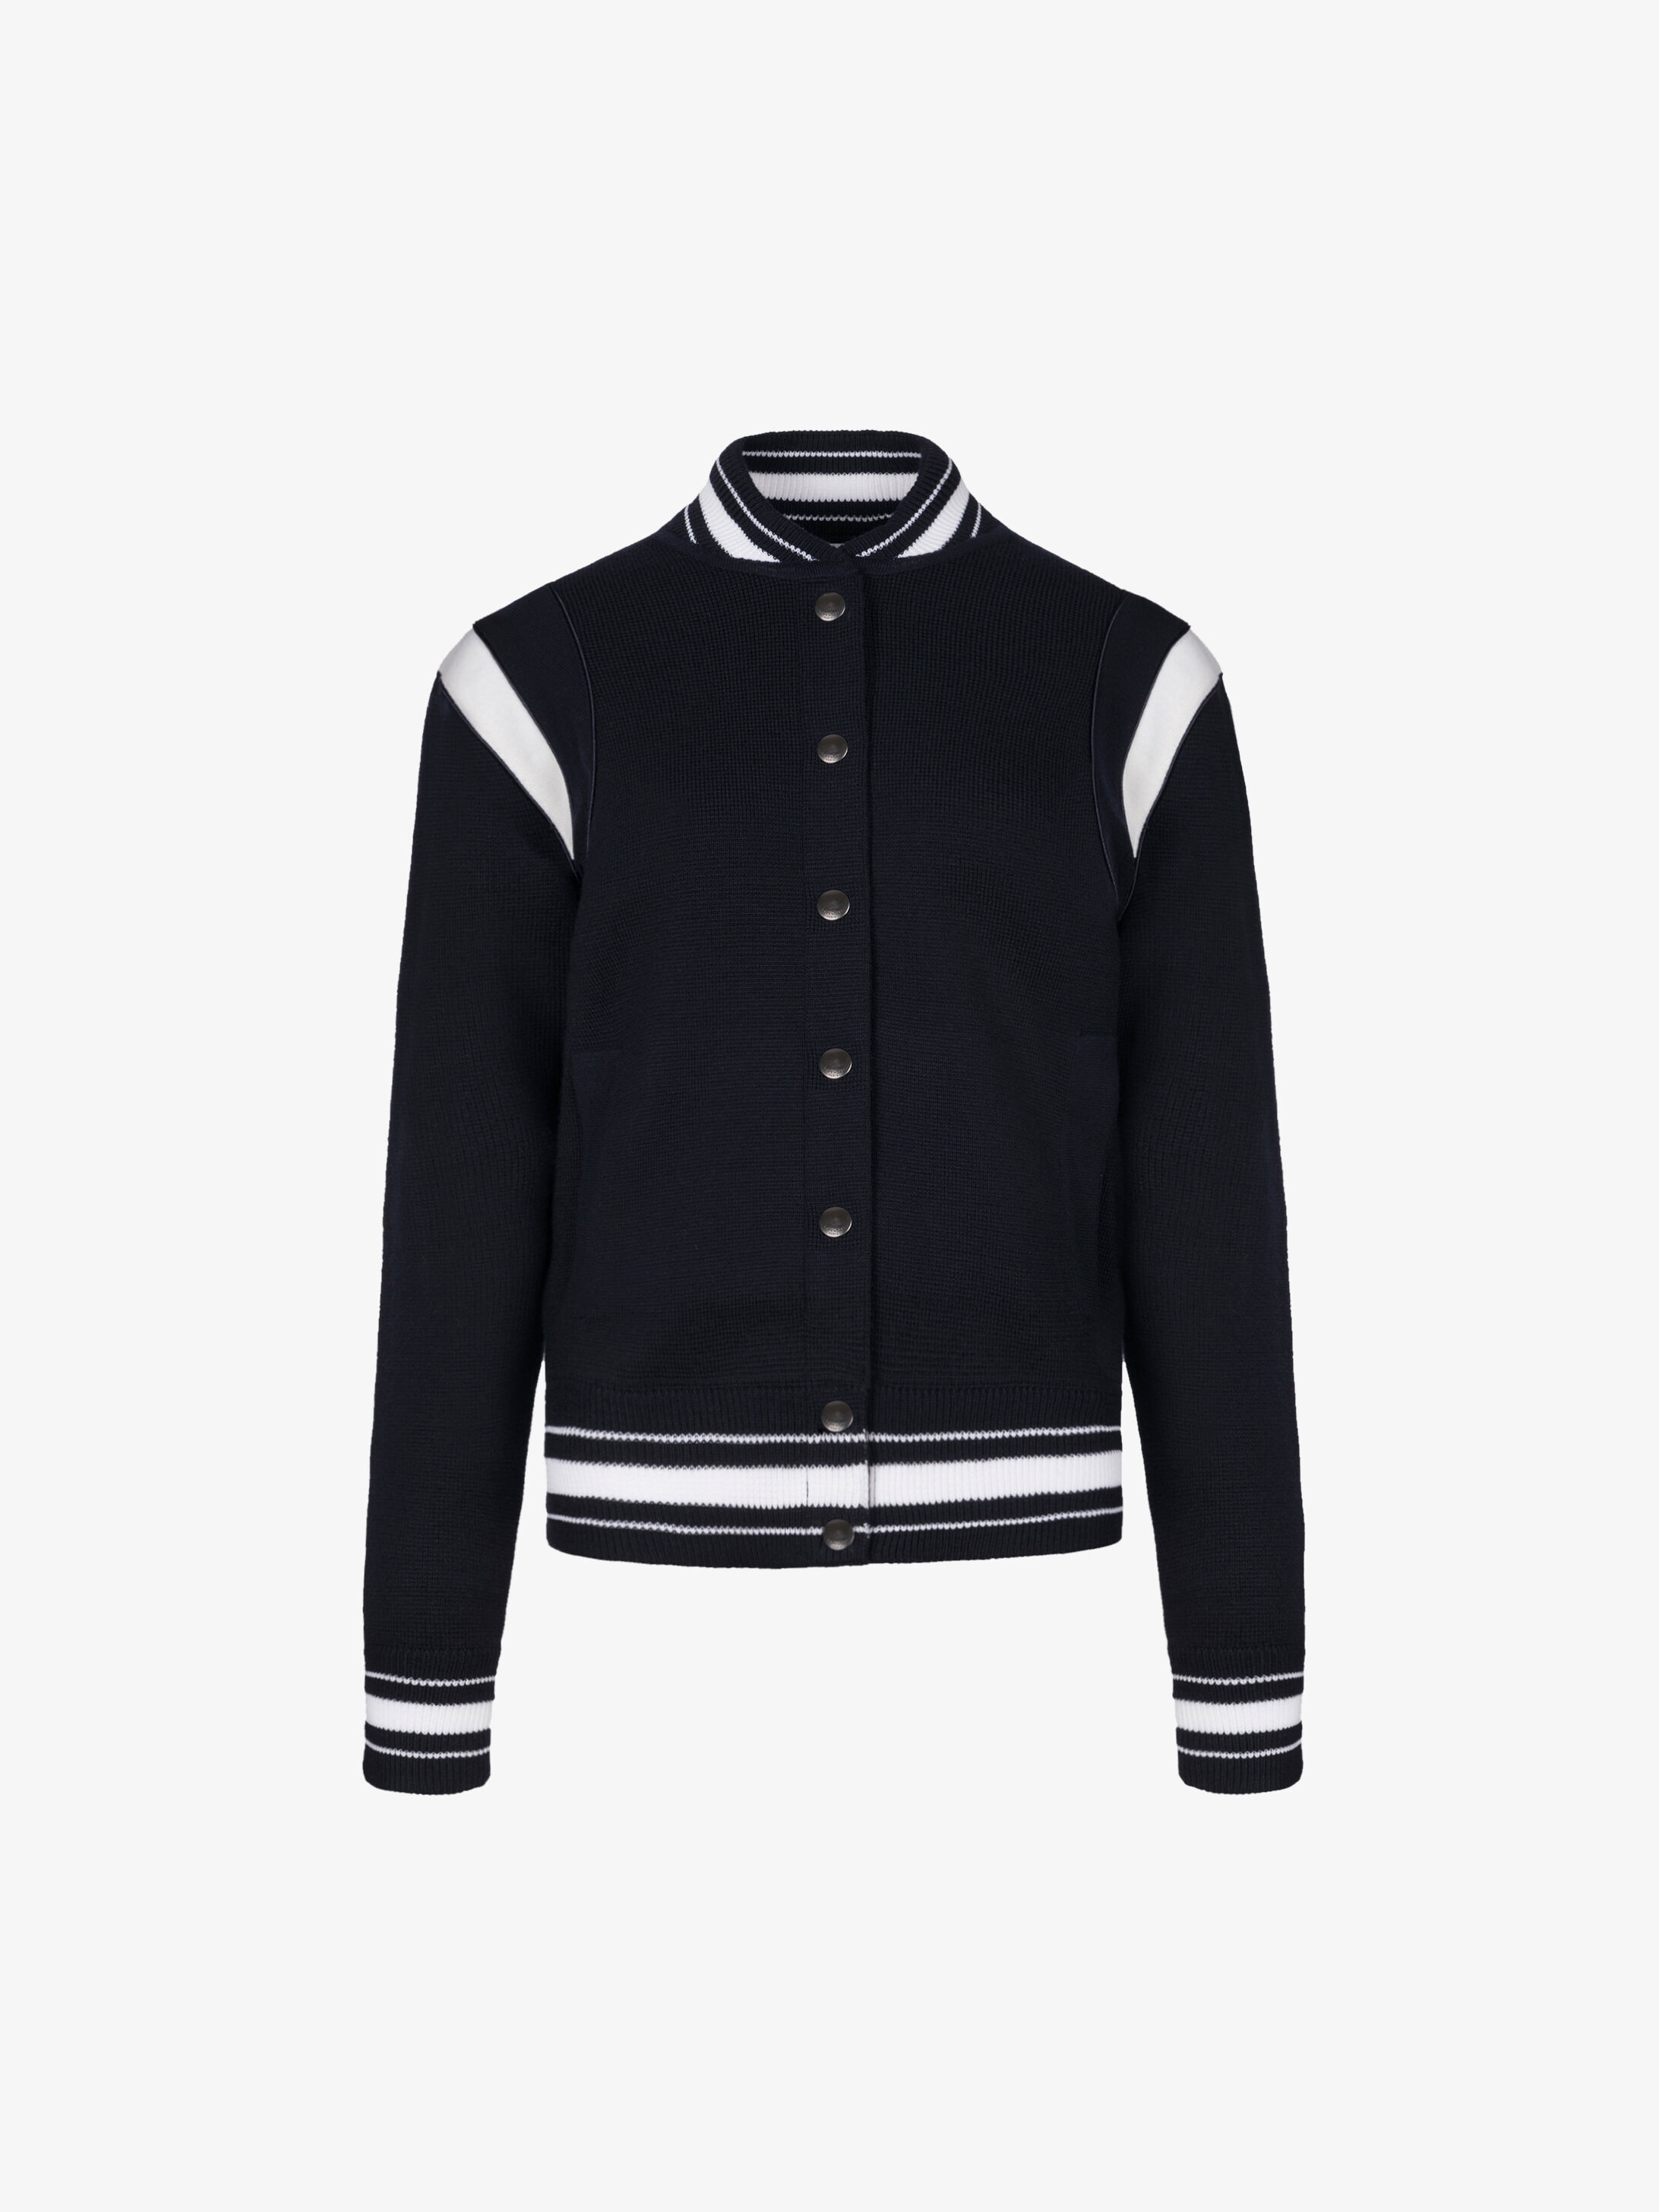 eaf6e8ec4 Women's Bombers and Blousons collection by Givenchy. | GIVENCHY Paris